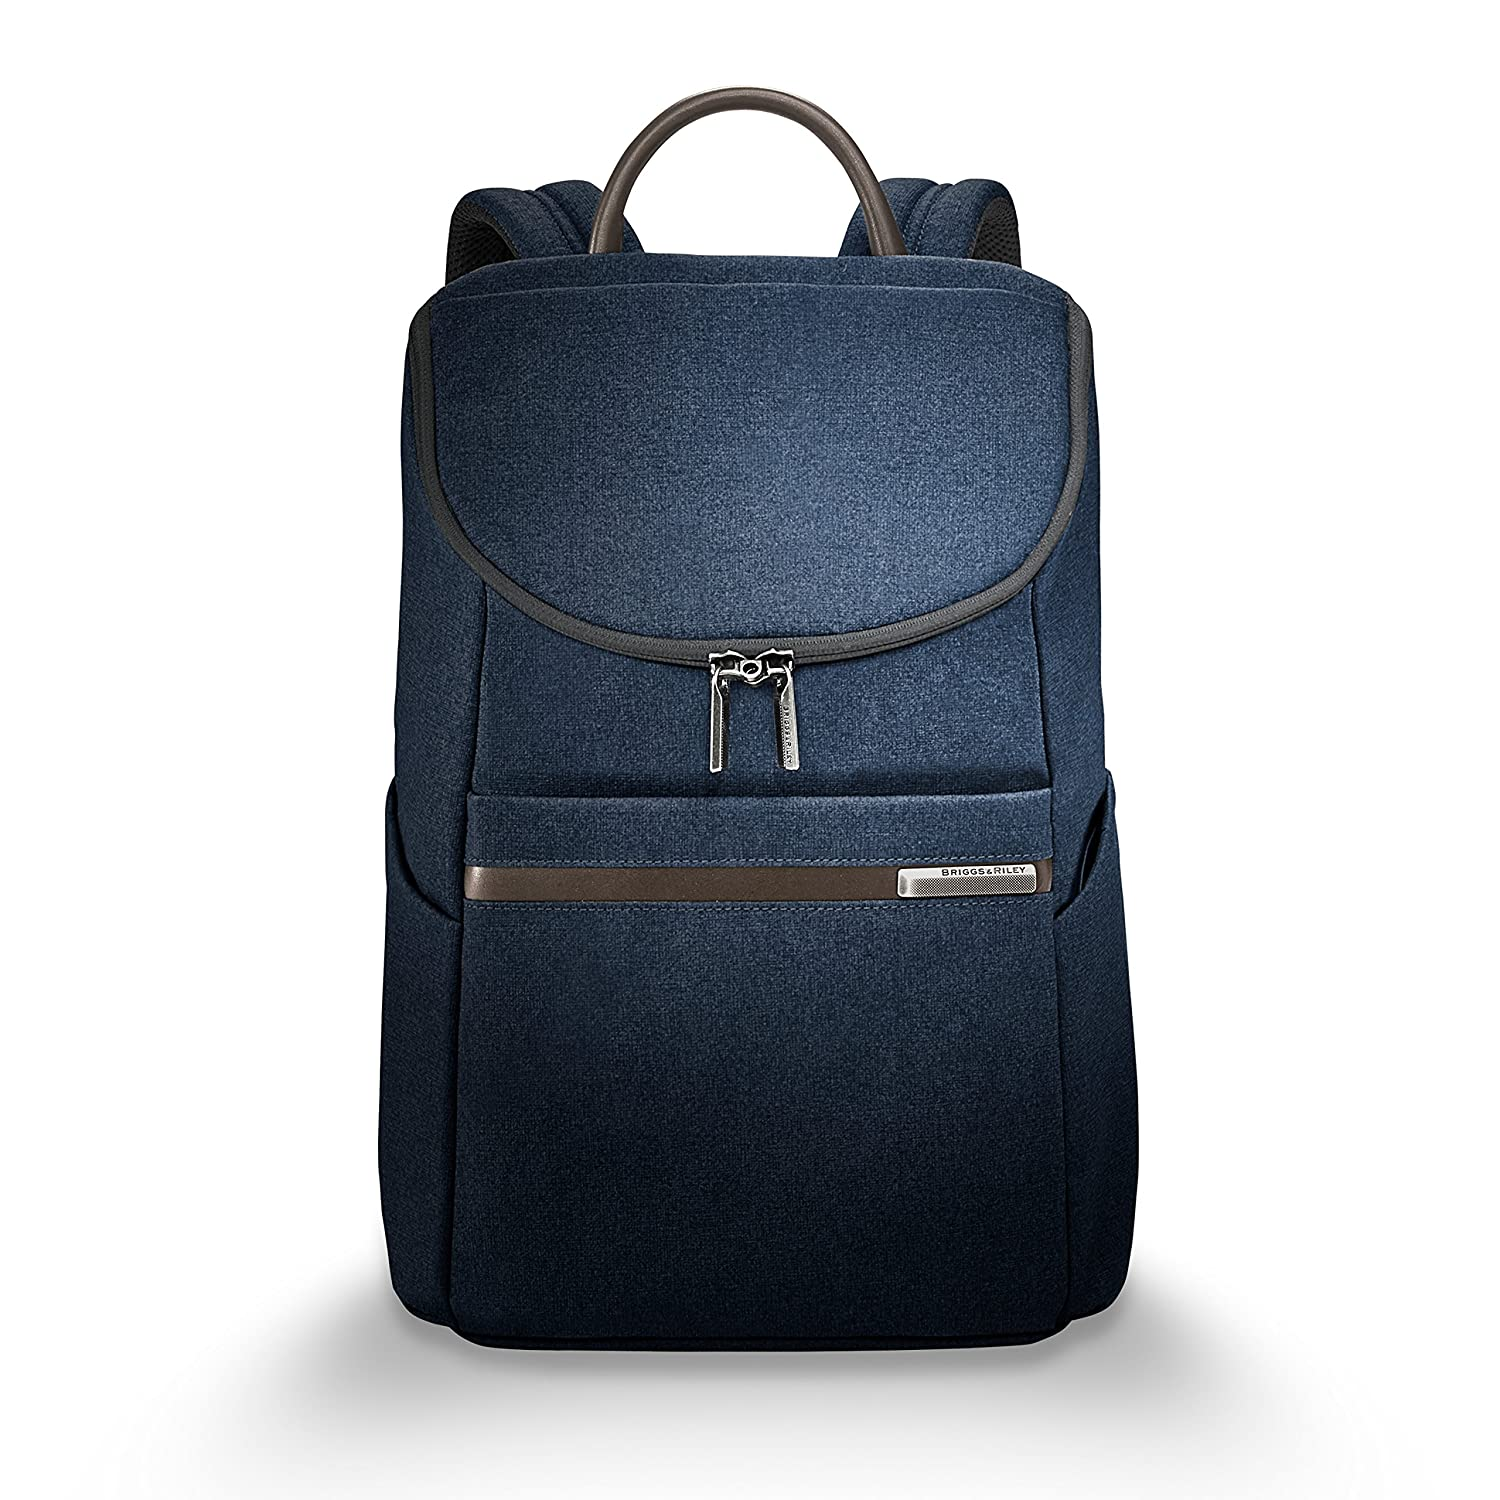 Briggs & Riley Kinzie Street Small Wide-Mouth Backpack ZP130 13 Briefcase 38 cm 13.5 L Navy